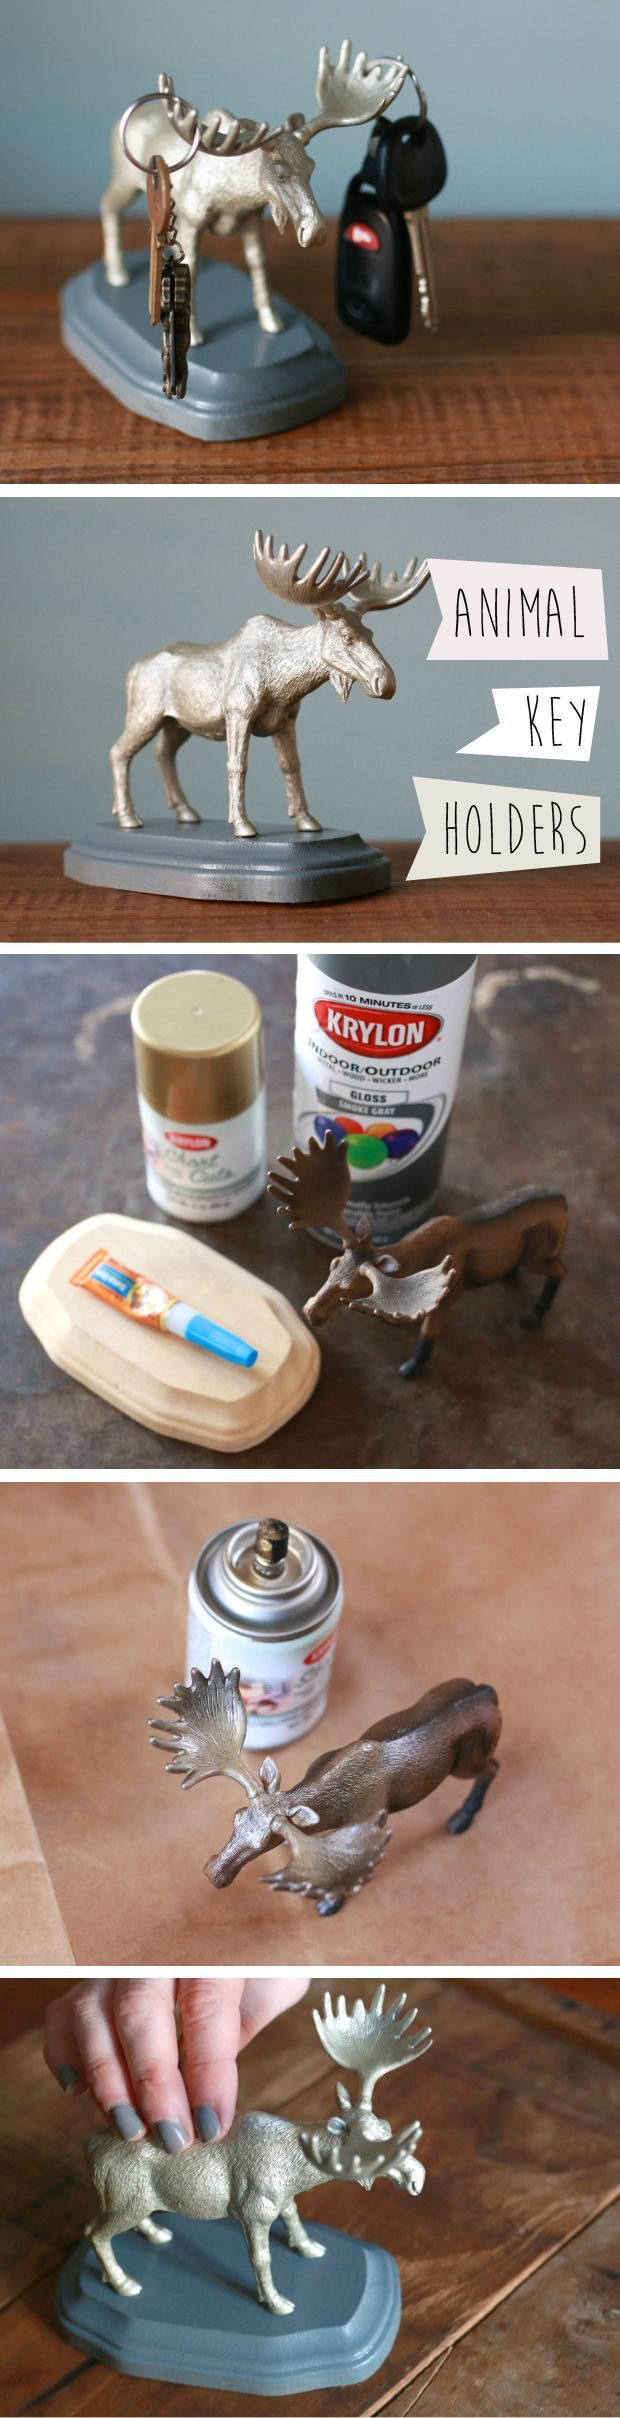 """Seriously, such a  great idea! Use a plastic animal toy, wooden plaque and a touch of your favorite spray paint to make this freestanding """"handy helper"""" to hold keys, sunglasses and other entryway odds and ends. Your new animal friend will add personality while acting as an organizational lifesaver.  Read more : www.ehow.com/..."""